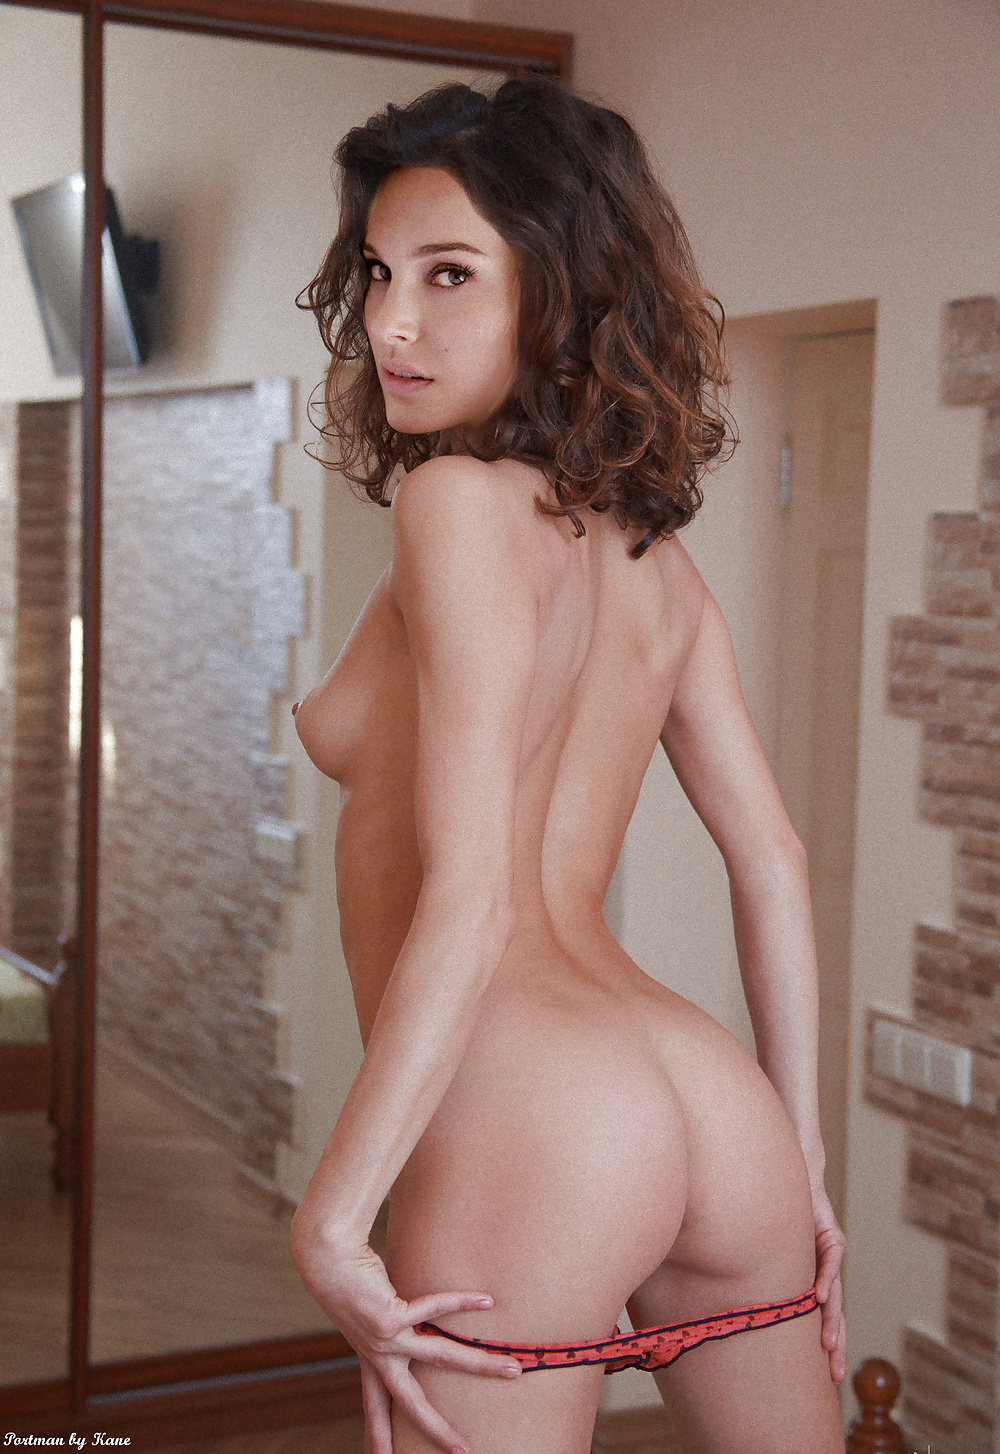 Natalie portman nude on couch, petite bella juicy